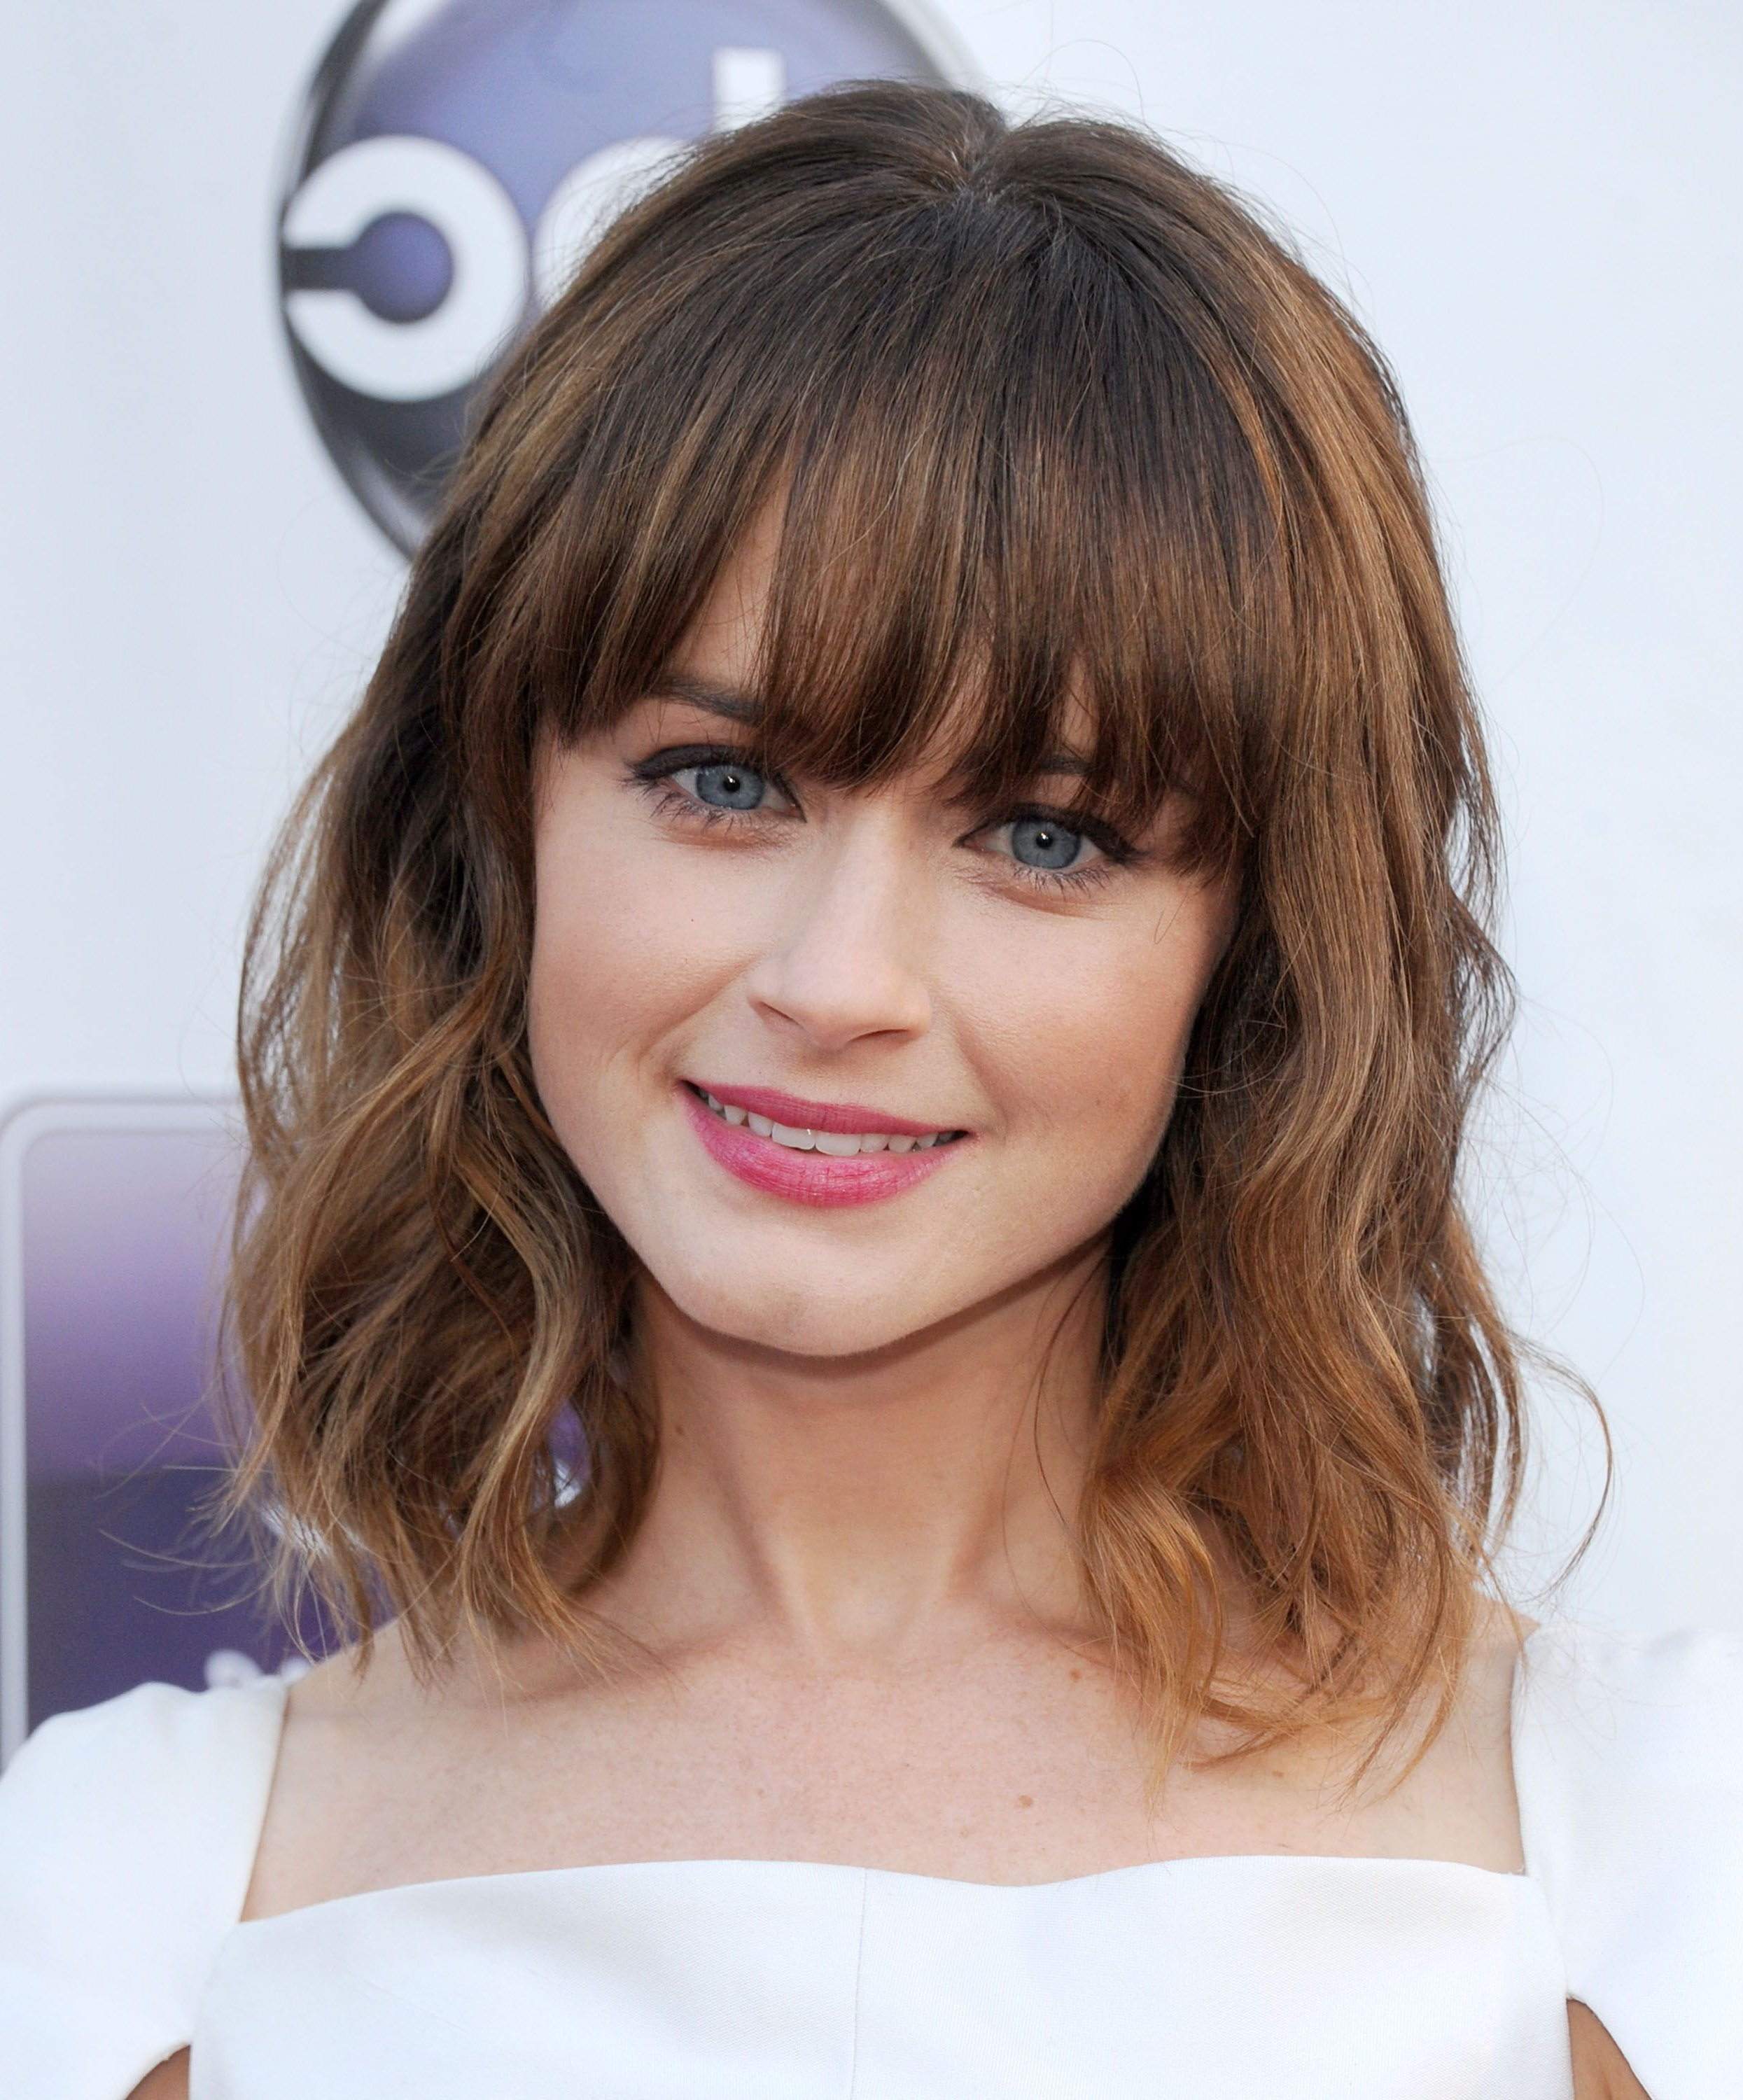 35 Best Hairstyles With Bangs – Photos Of Celebrity Haircuts With Bangs Pertaining To Best And Newest Kids Medium Haircuts With Bangs (Gallery 19 of 20)